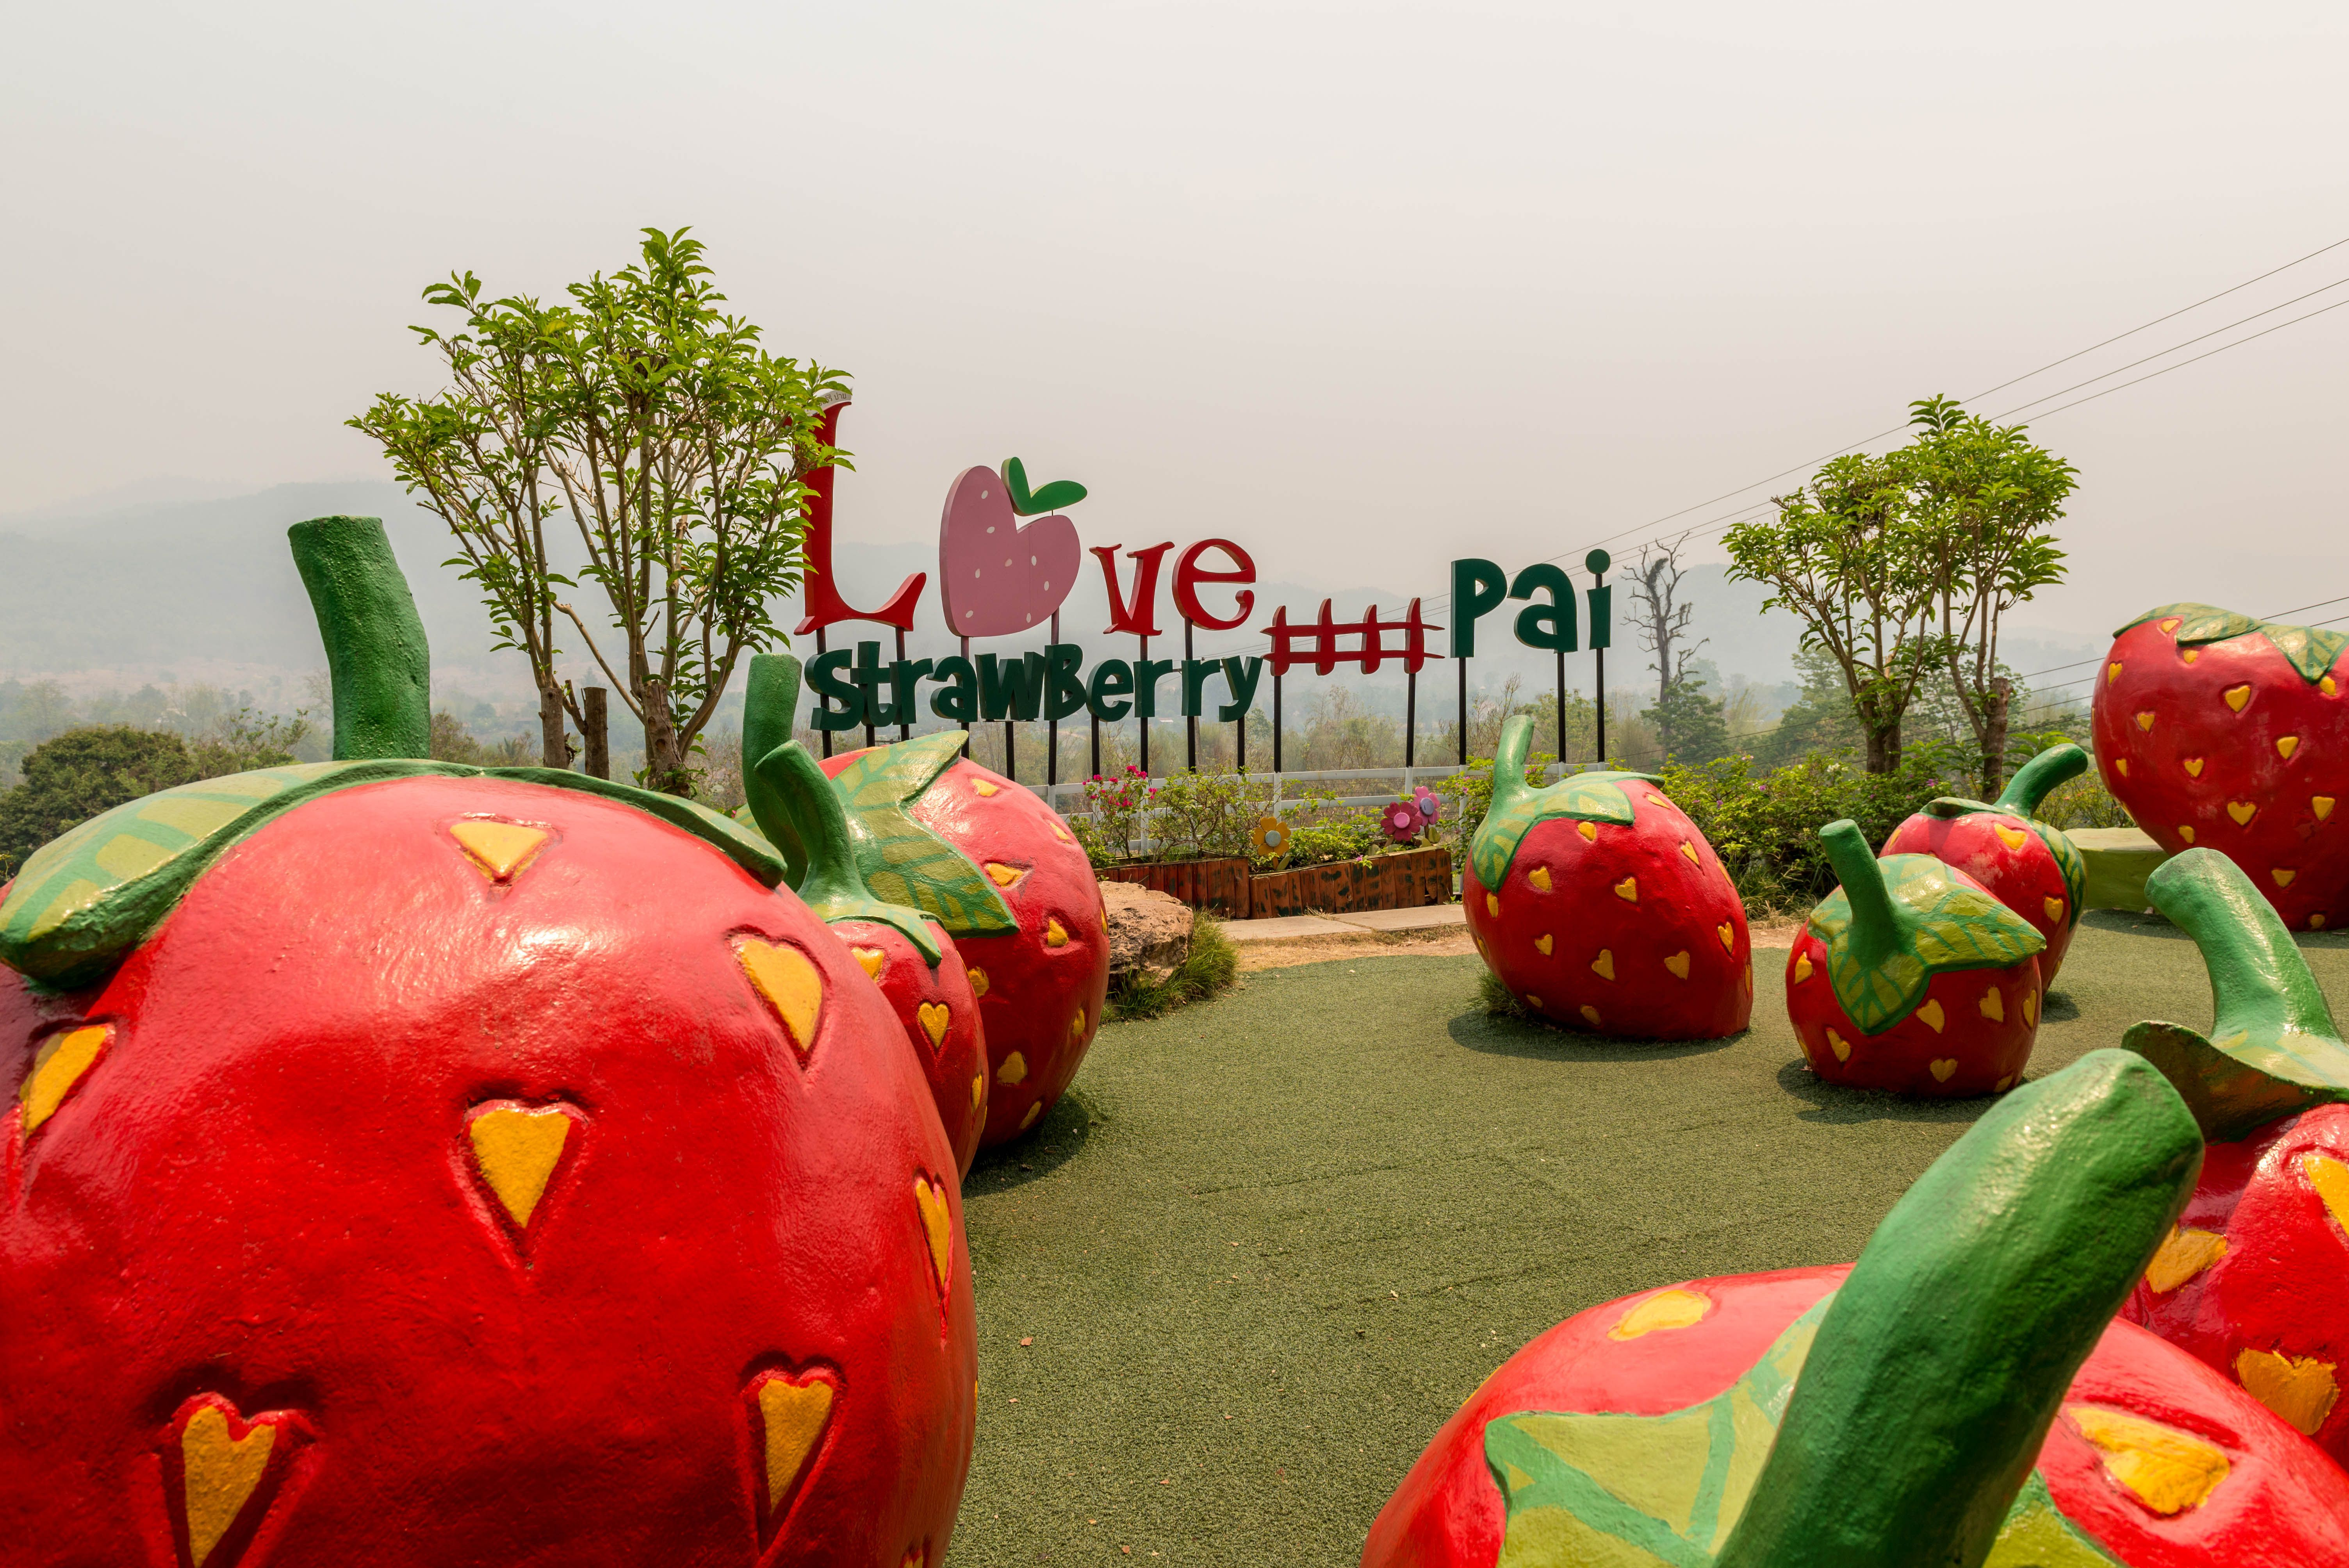 Giant artificial strawberries at Love Strawberry in Pai Thailand